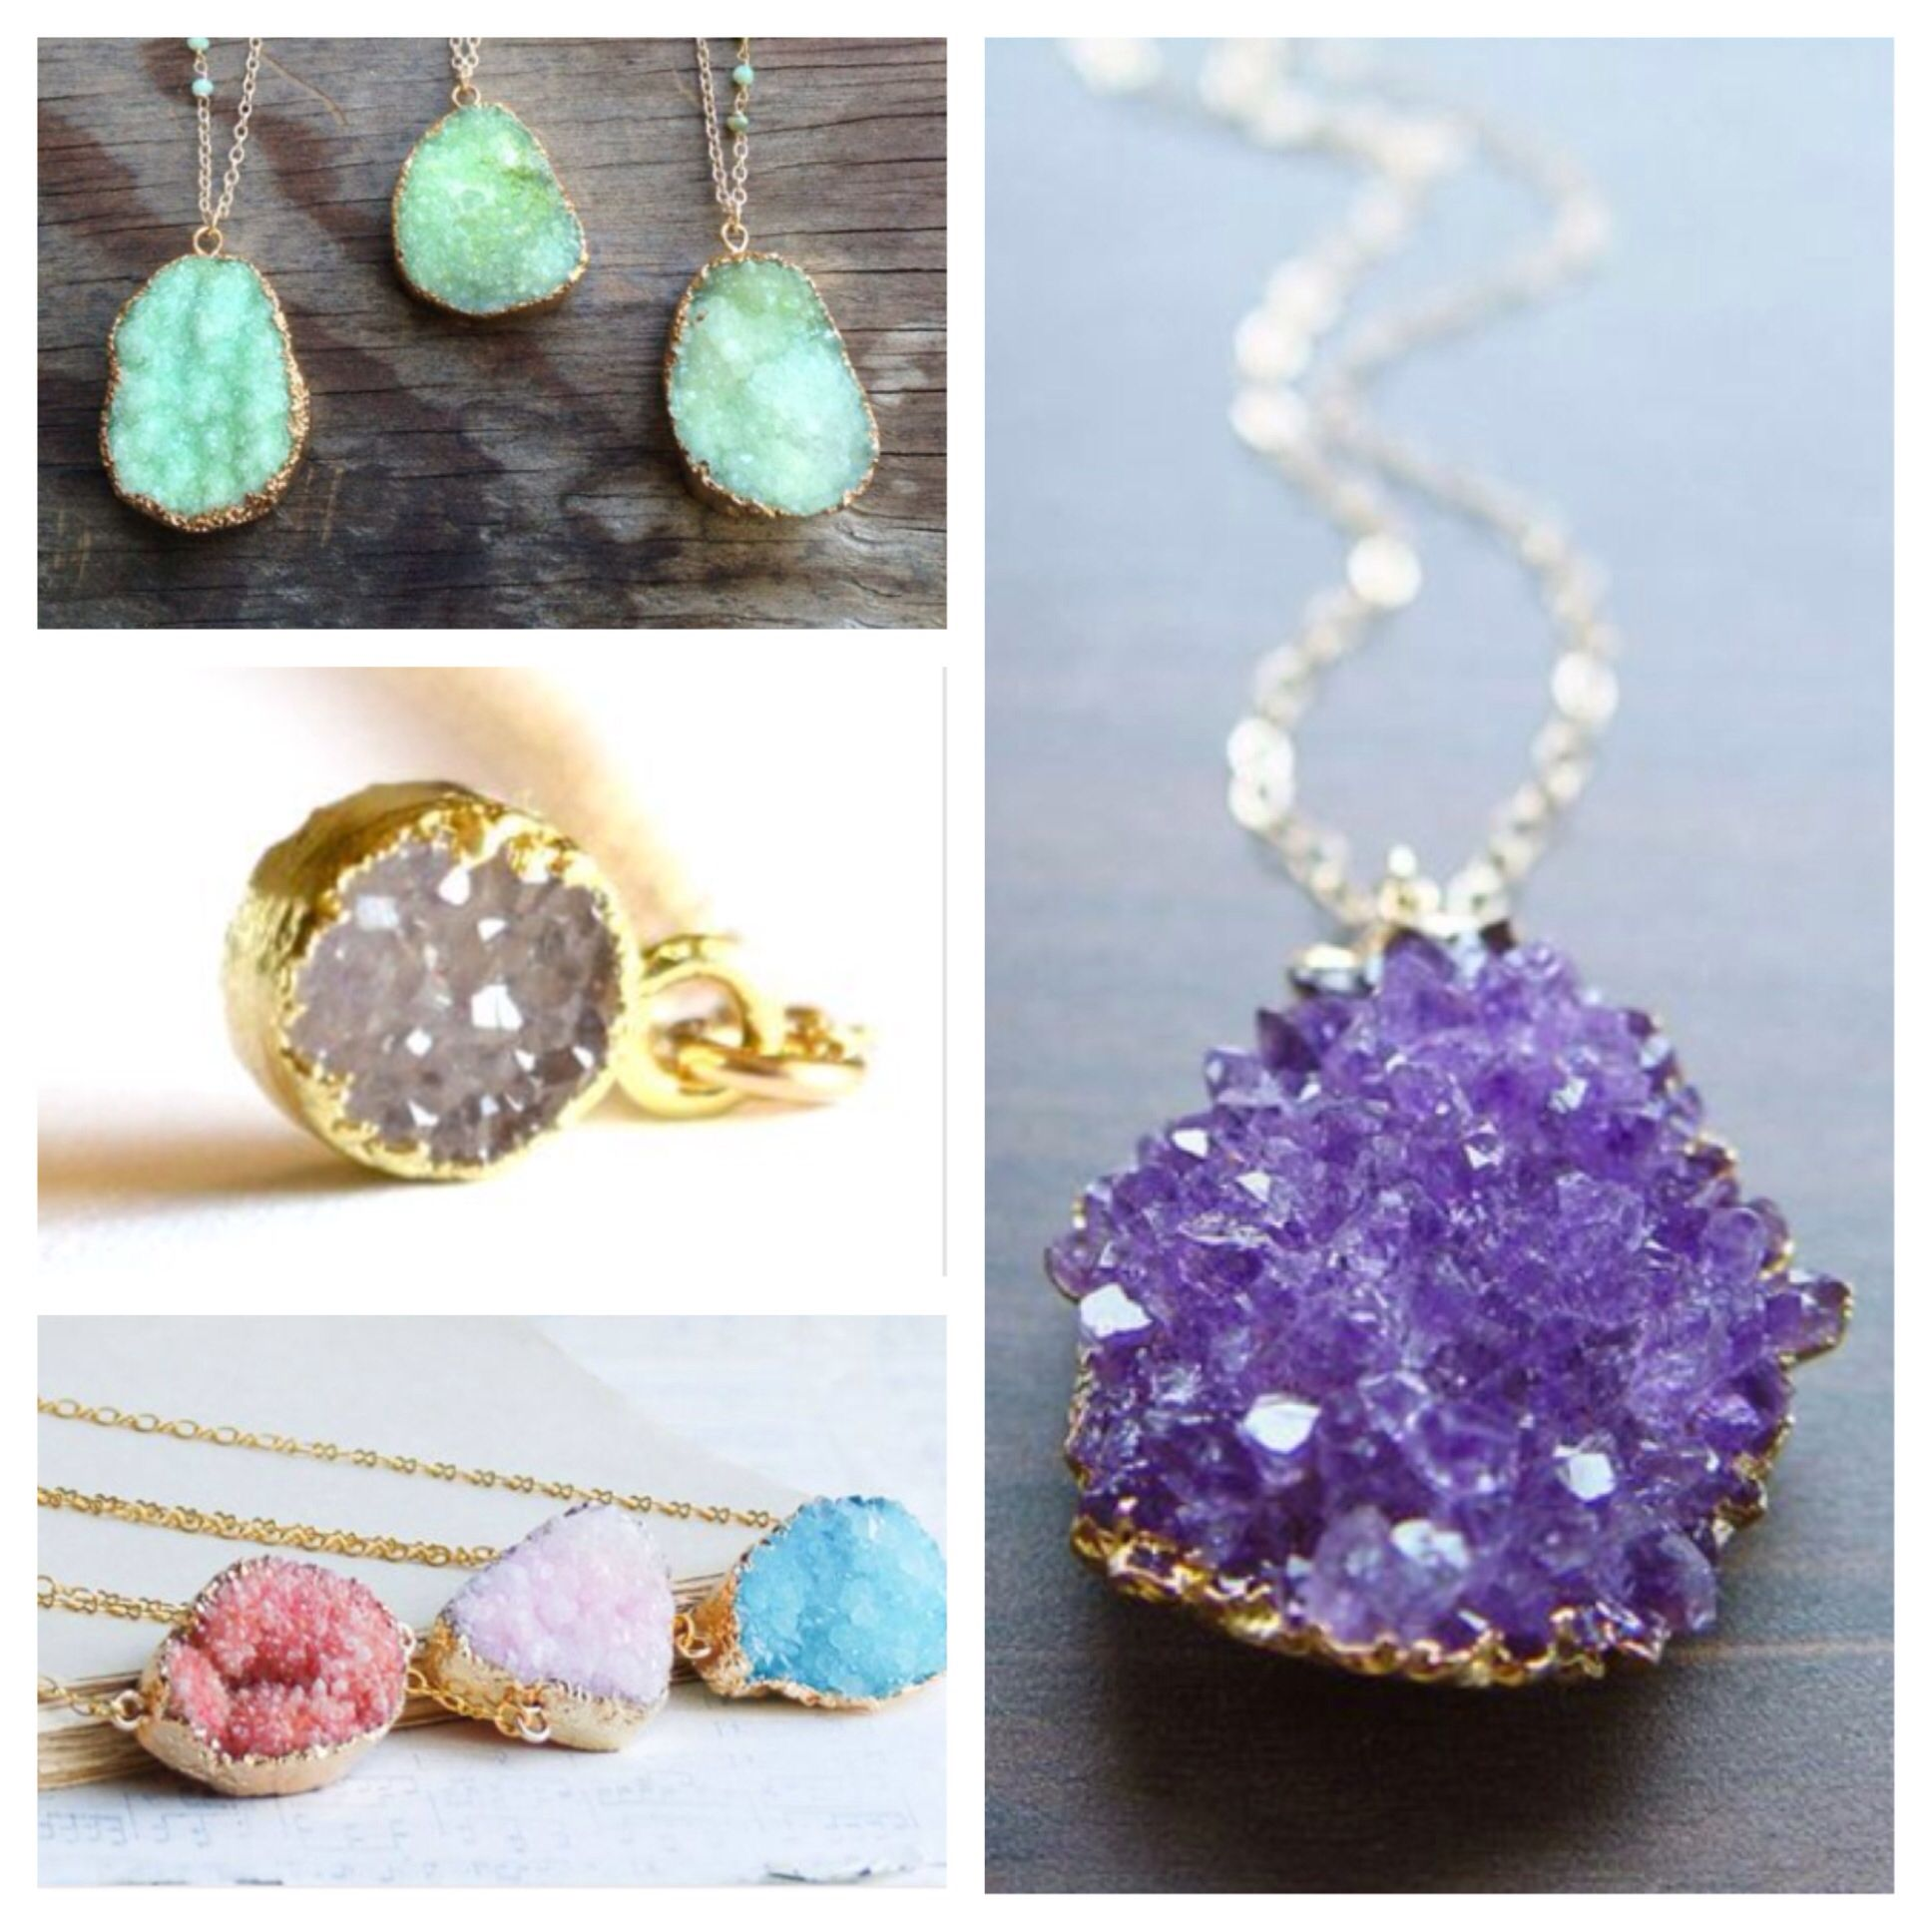 I love these necklaces!